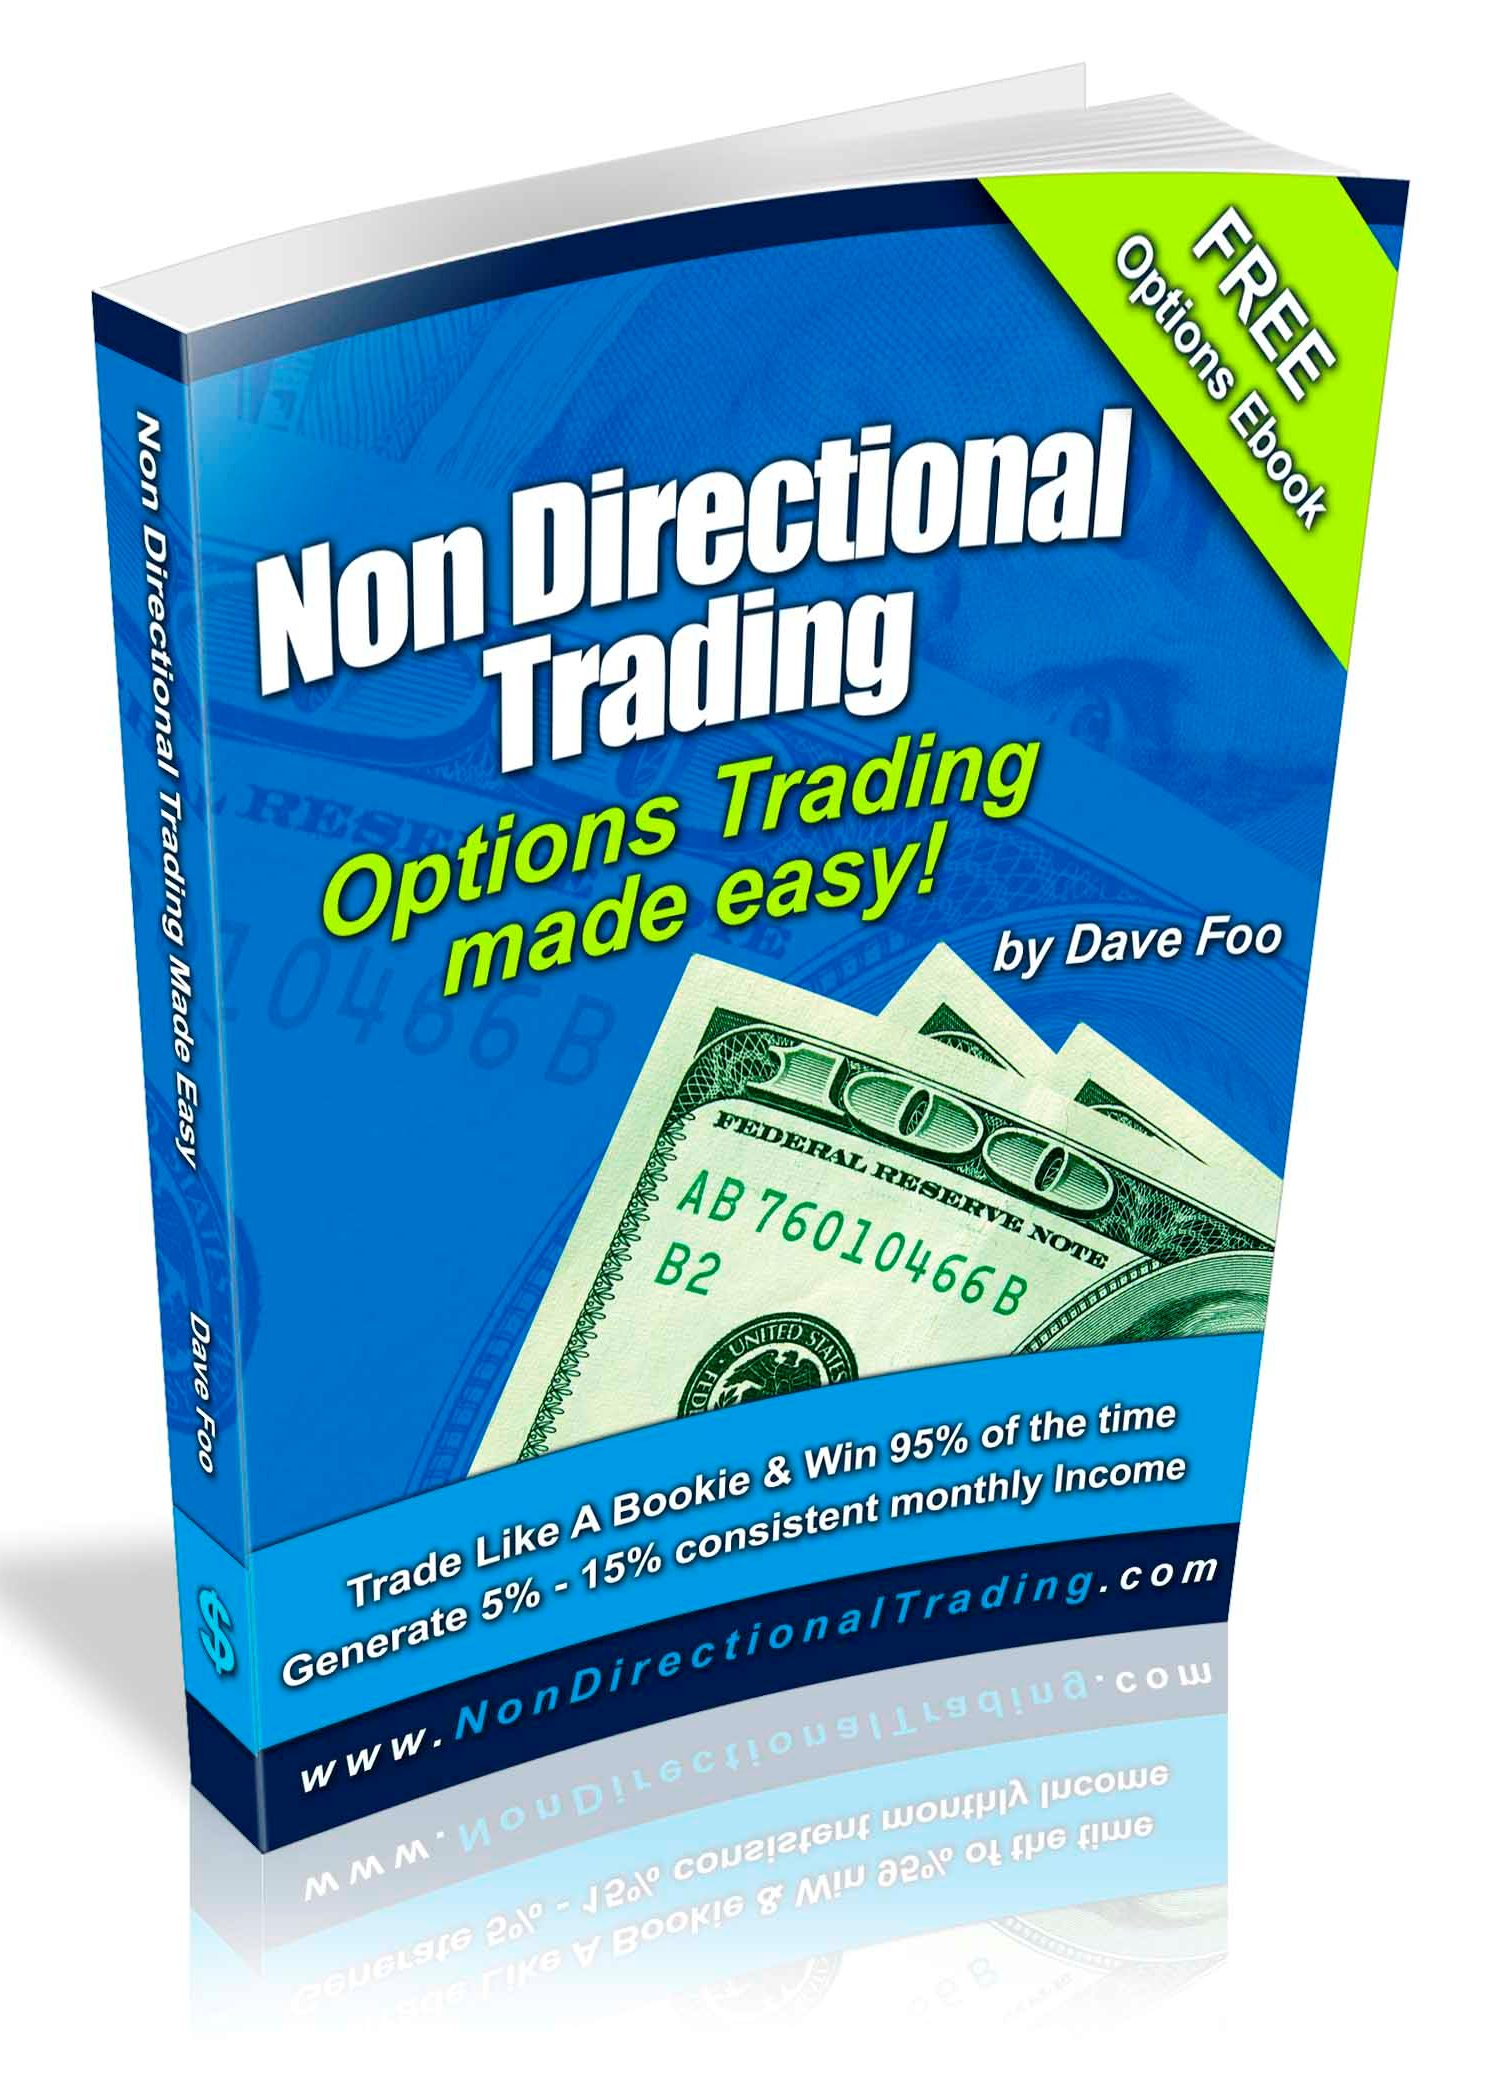 Non Directional Trading